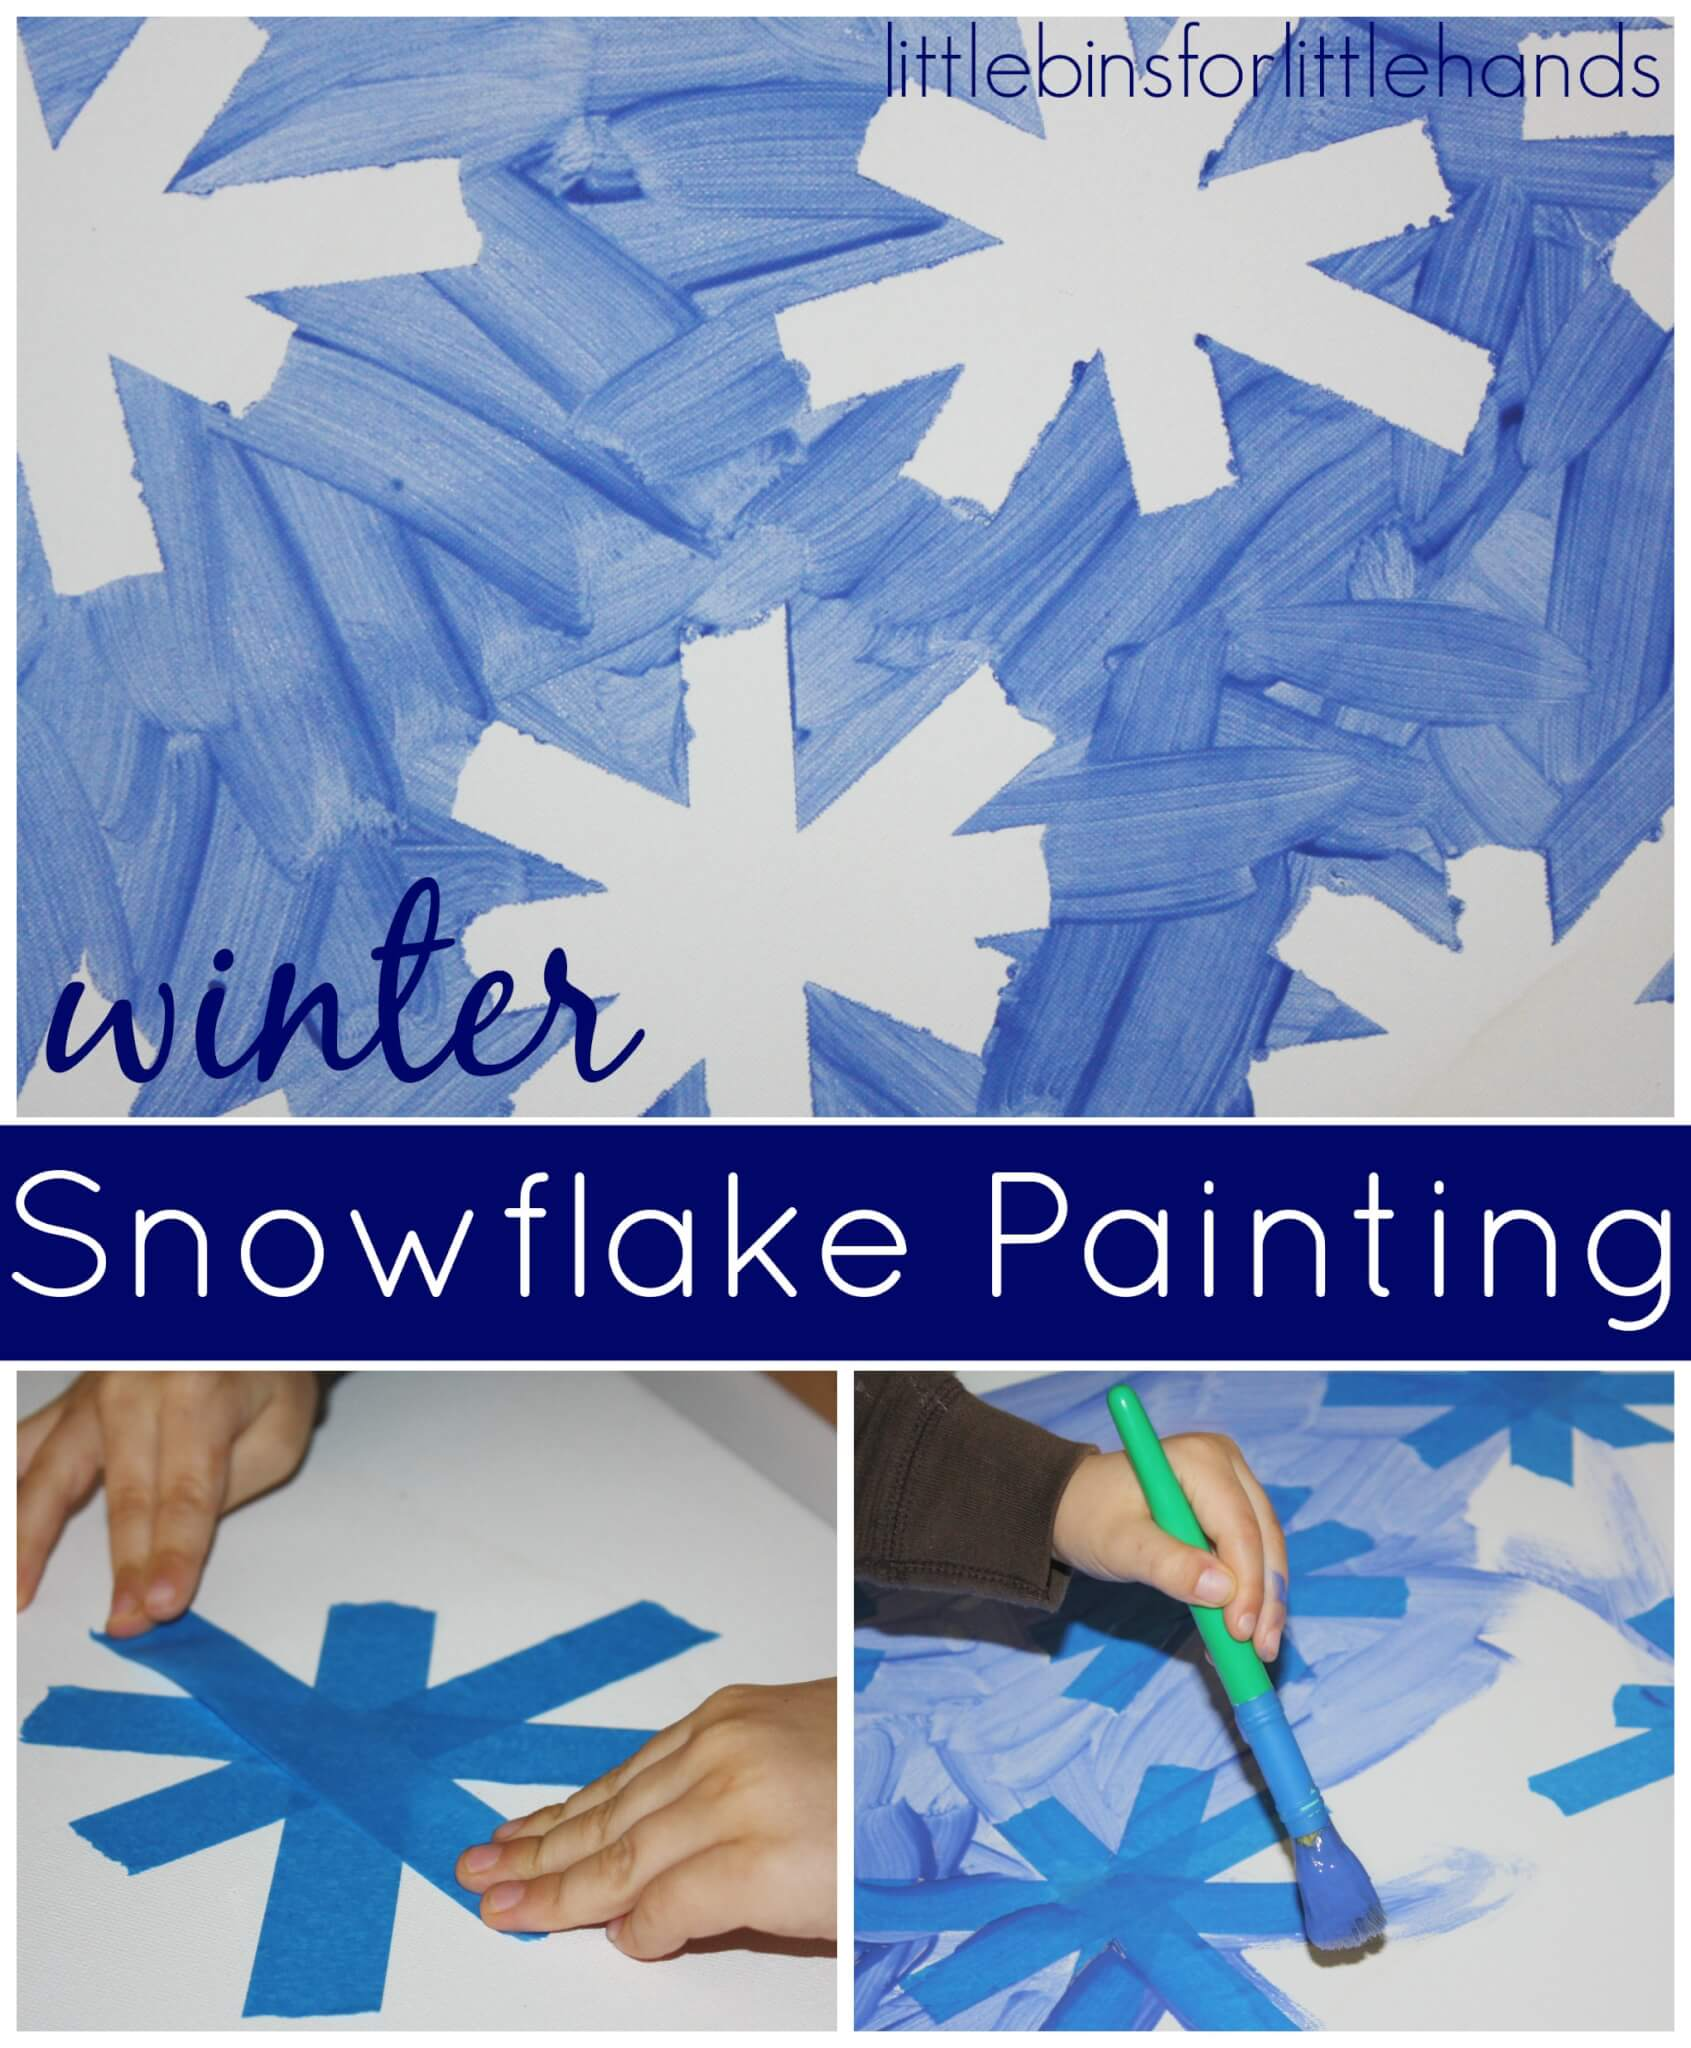 Snowflake Painting Tape Resist Activity for Winter Art